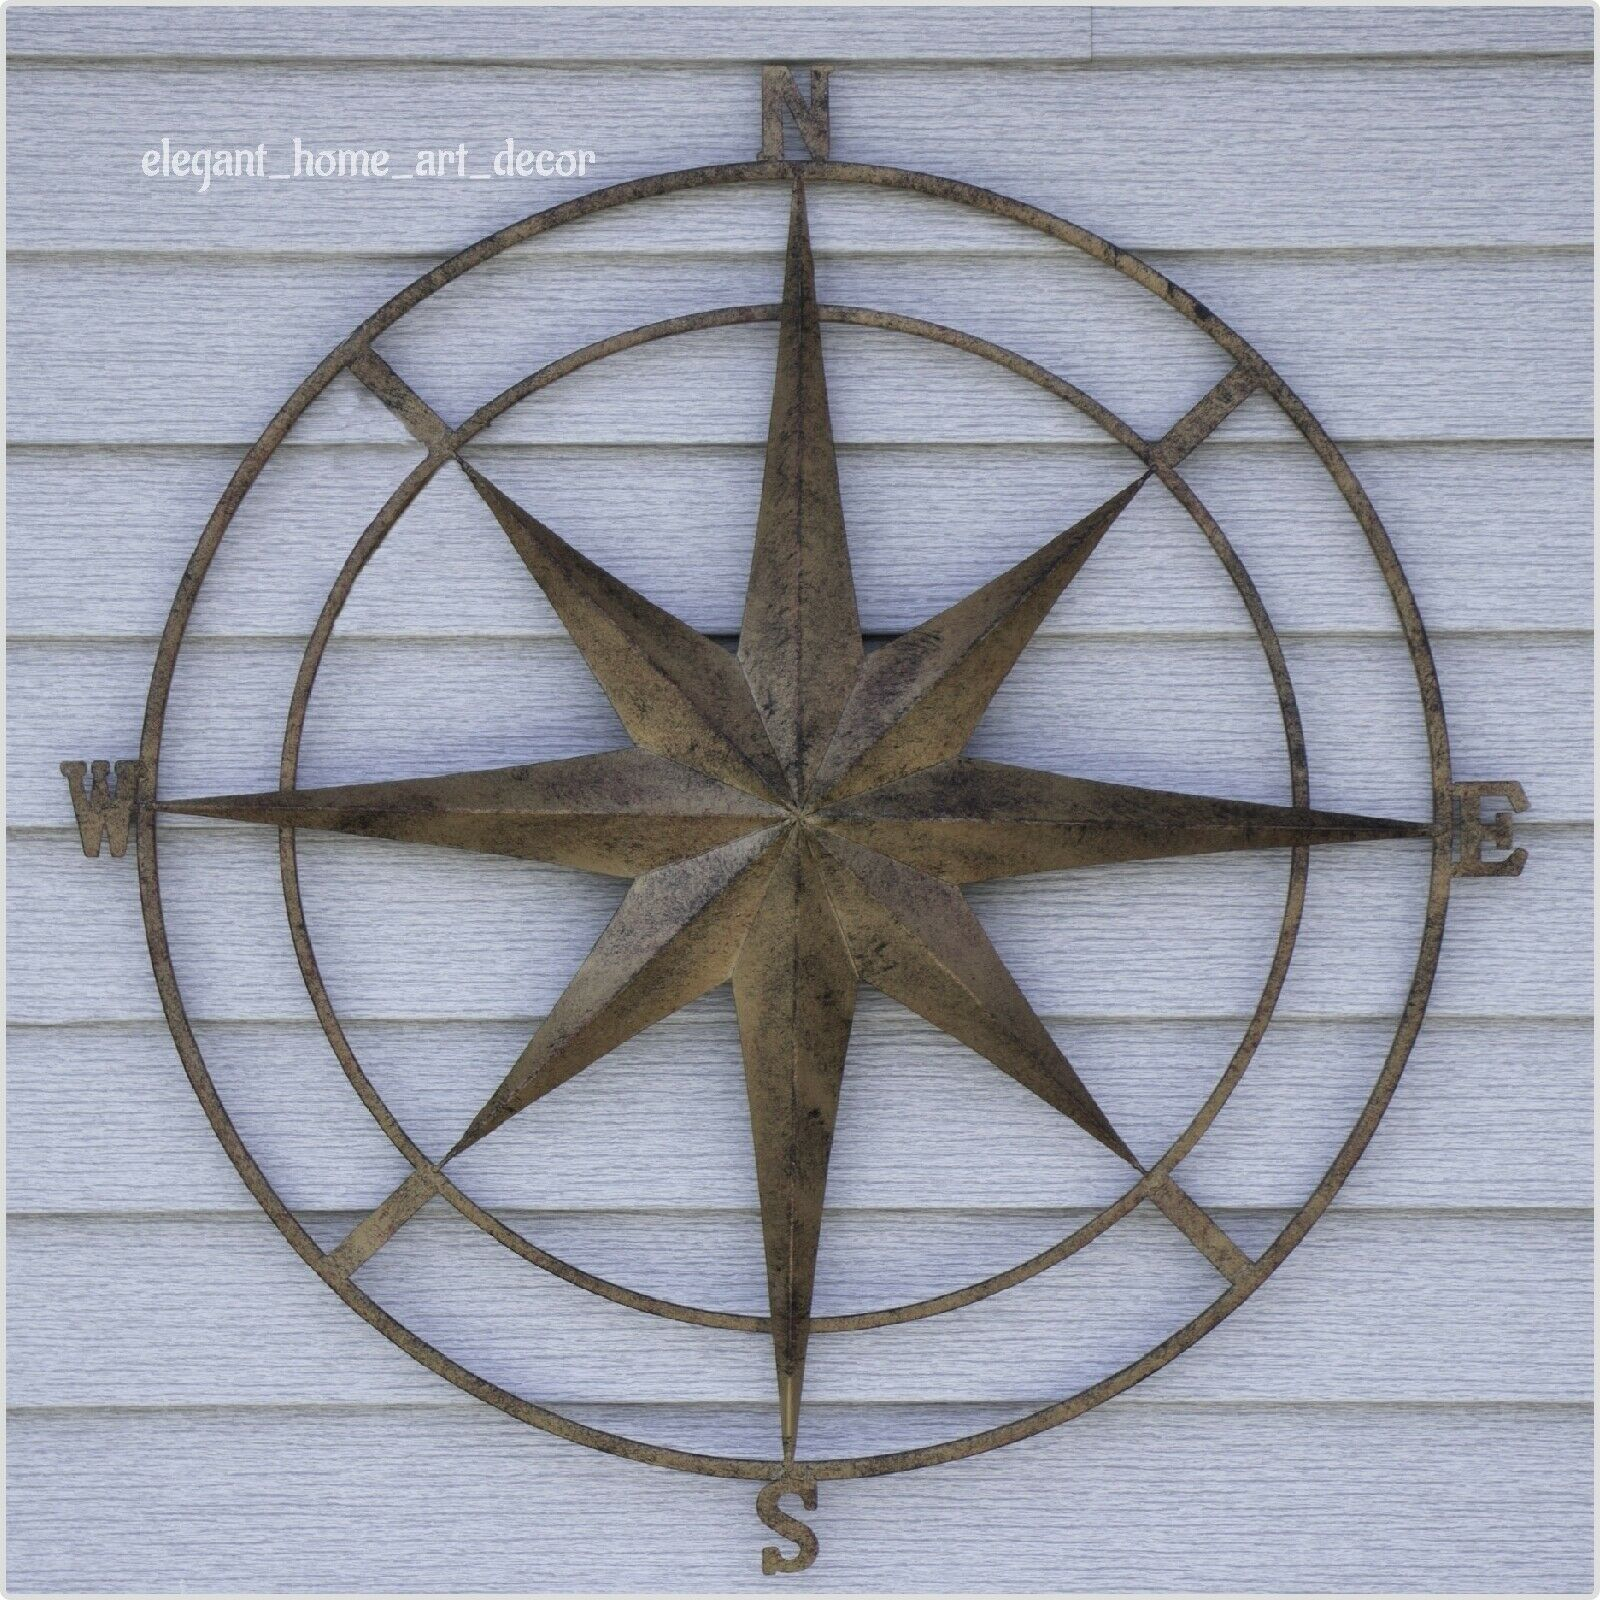 Details About Compass Wall Decor Metal Vintage Rustic Style Nautical Garden  Art Home Sculpture throughout Outdoor Metal Wall Compass (Image 15 of 30)